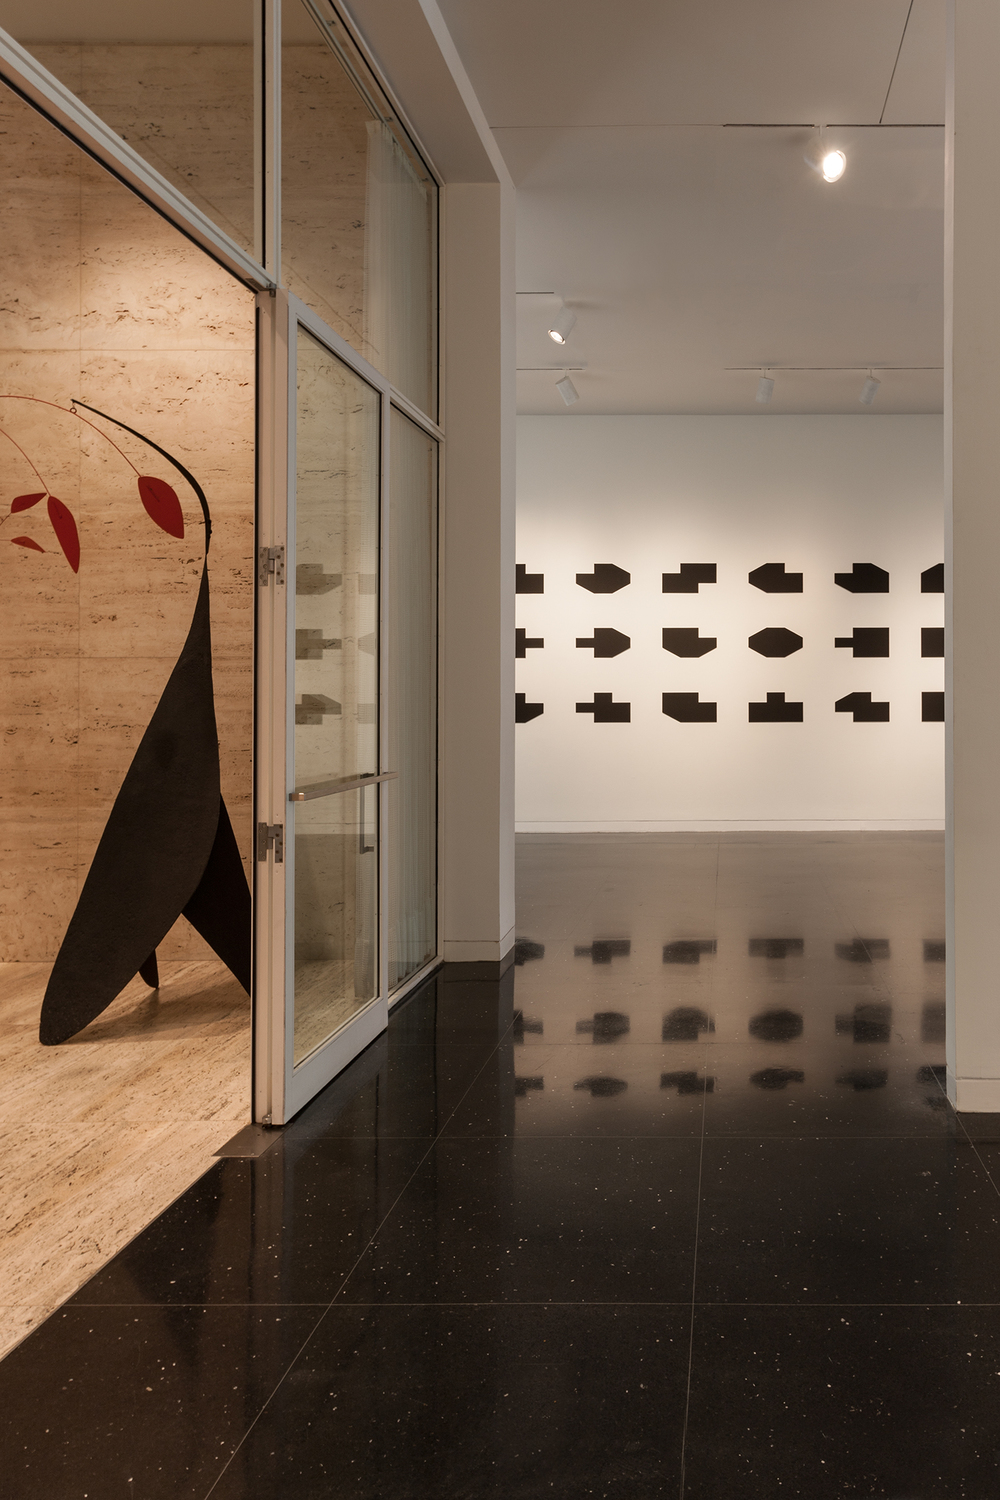 Lawrence Kenny: Figures and Grounds: Approaches to Abstraction / Arts Club of Chicago / Chicago IL